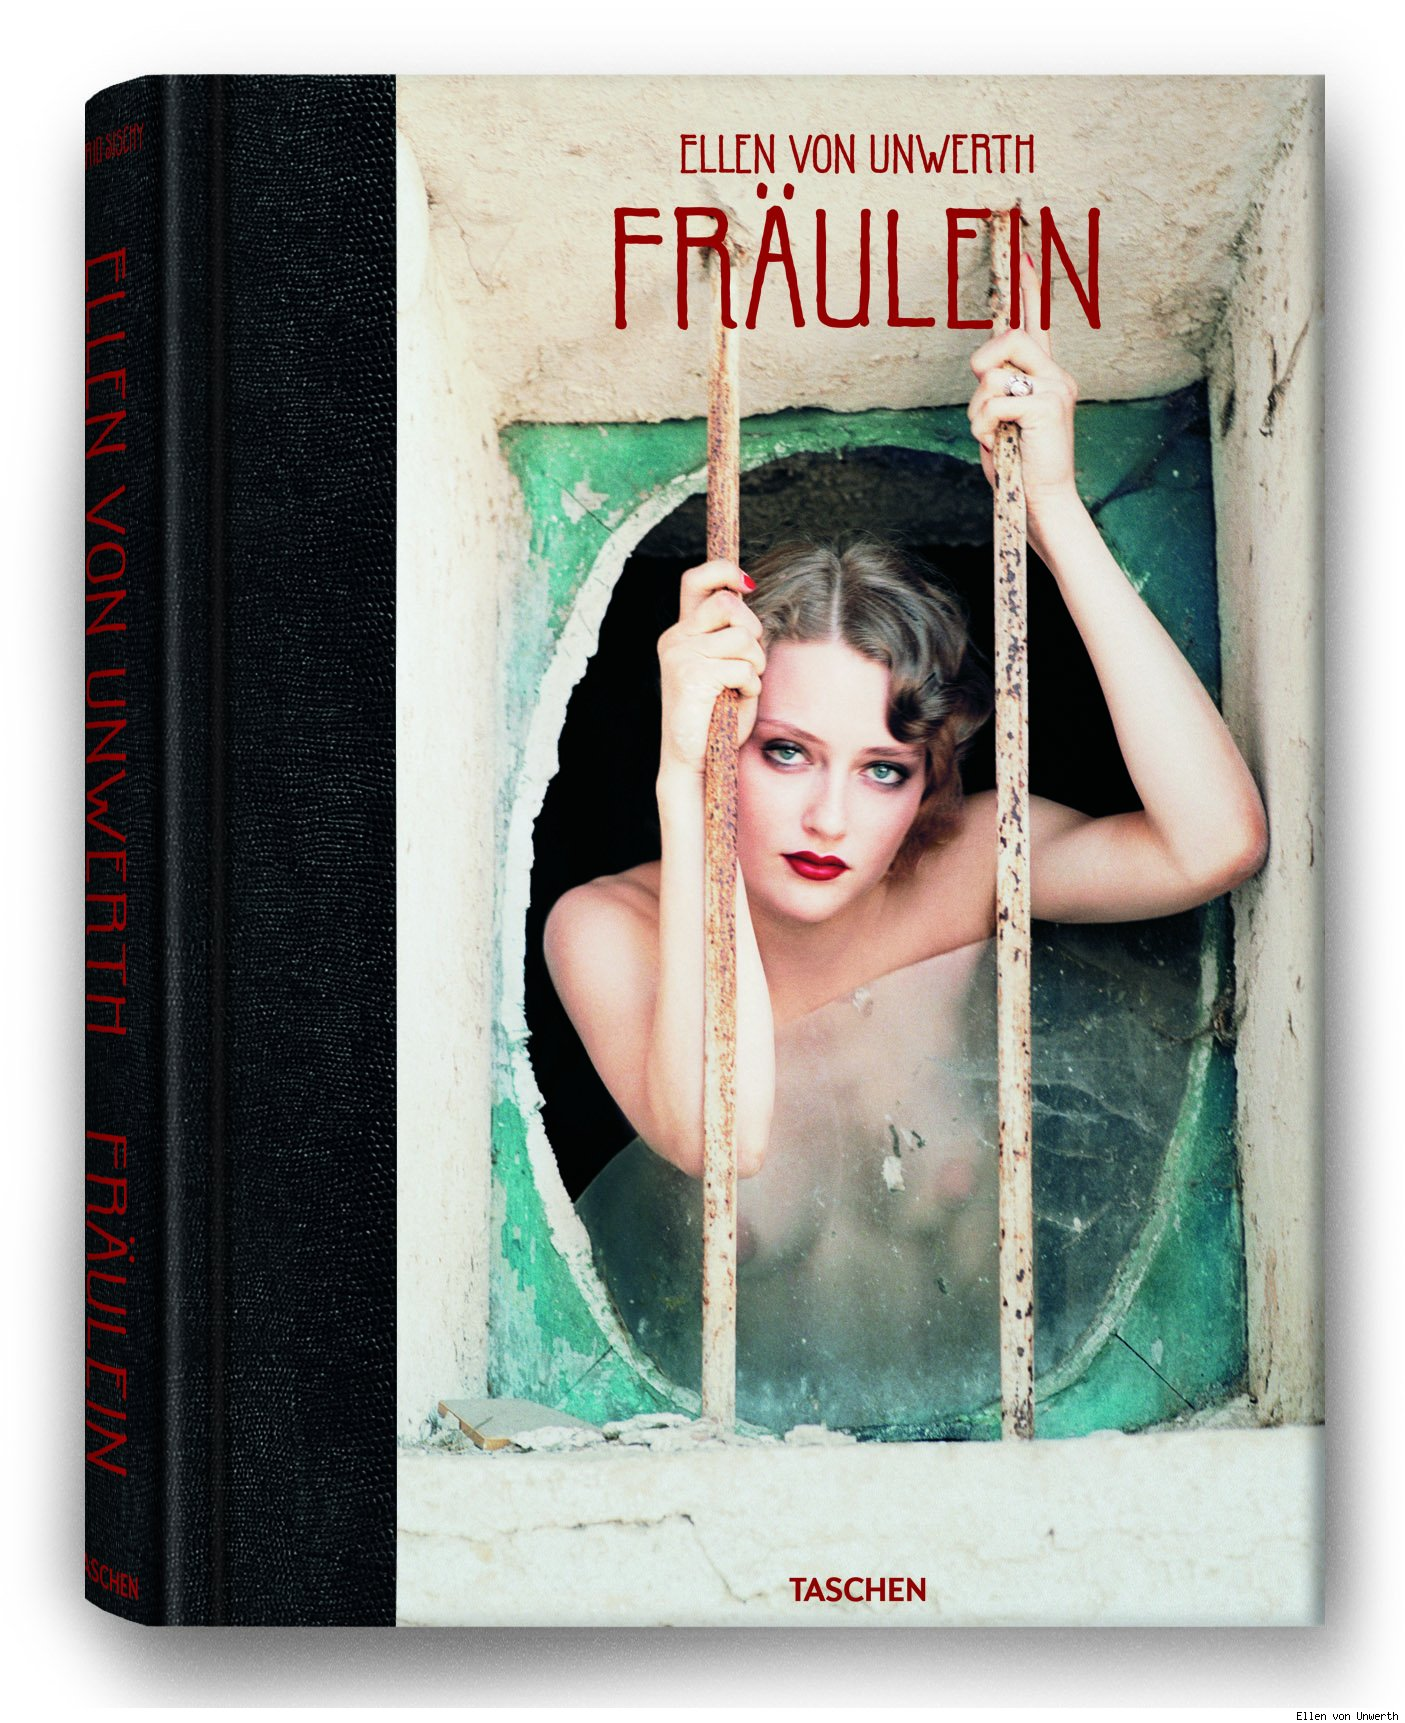 Cover Art for Fraulein by Ellen von Unwerth